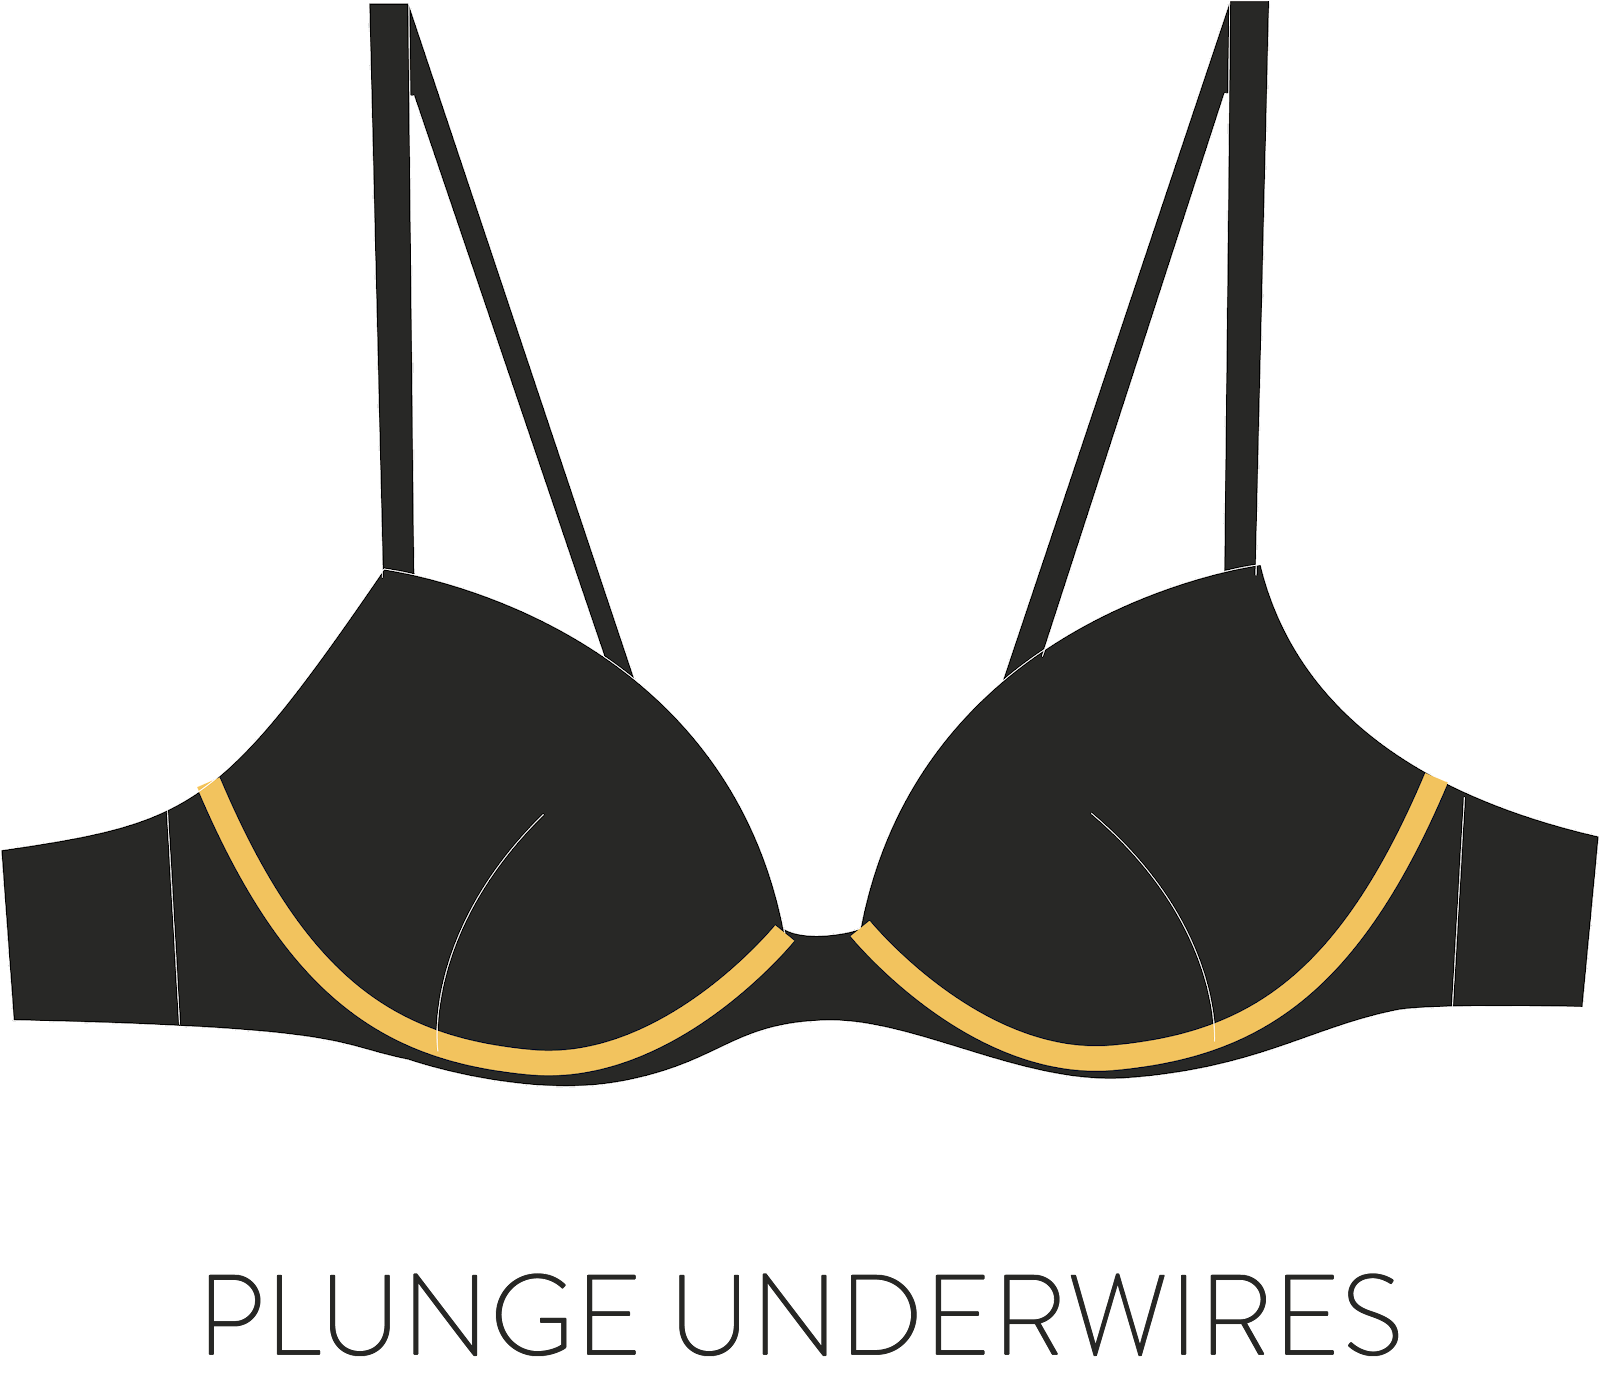 plunge underwires illustration